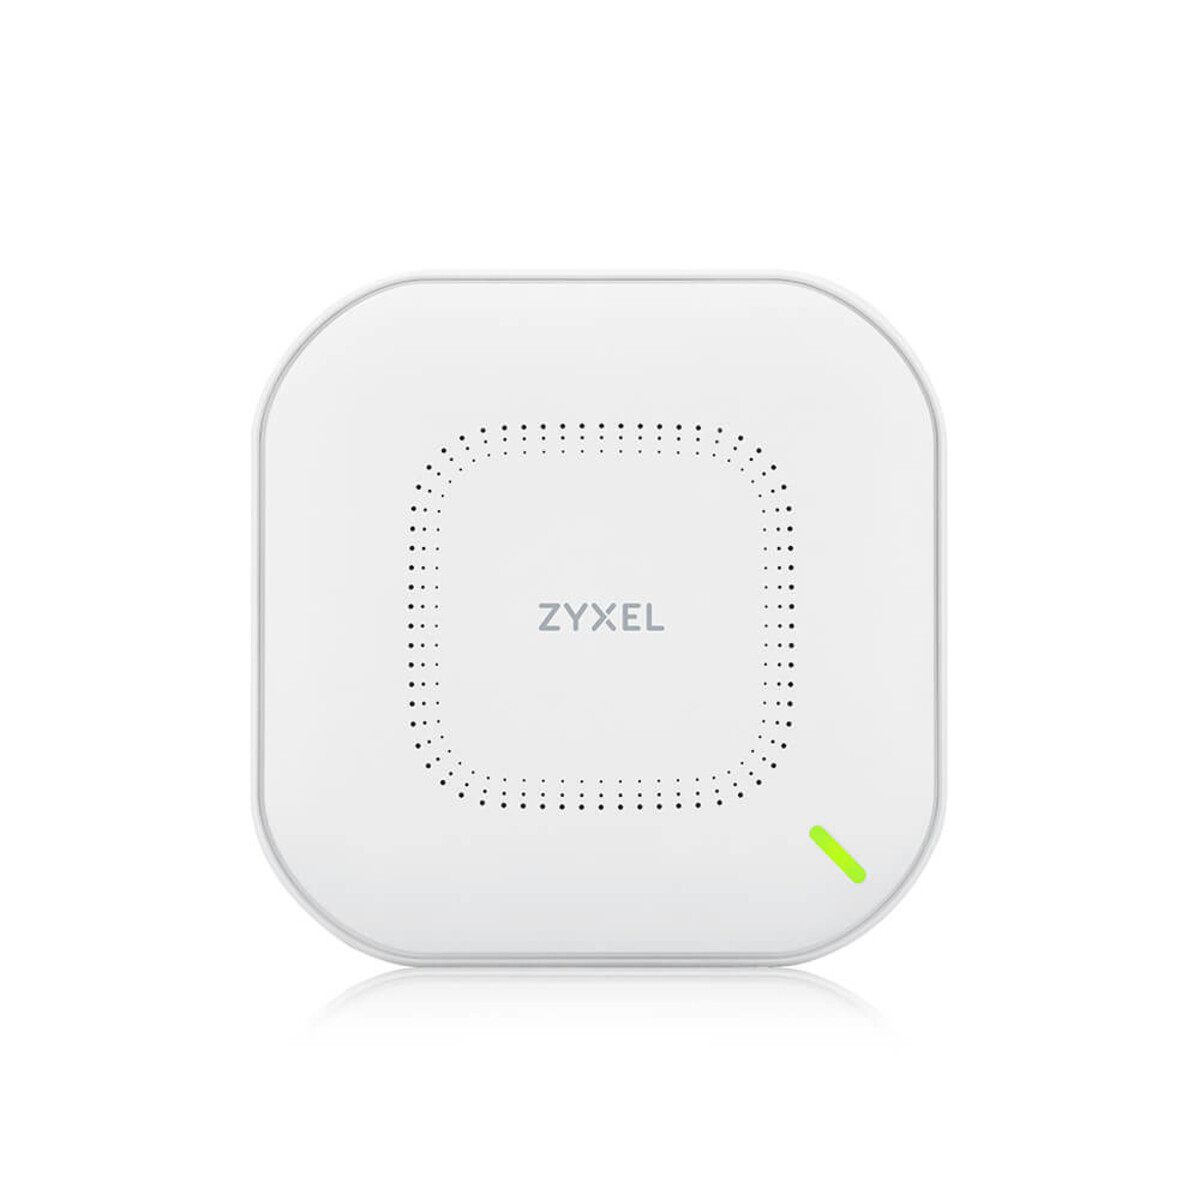 4718937610259-zyxel-nwa110ax-1000-mbit-s-bianco-supporto-power-over-ethernet-poe